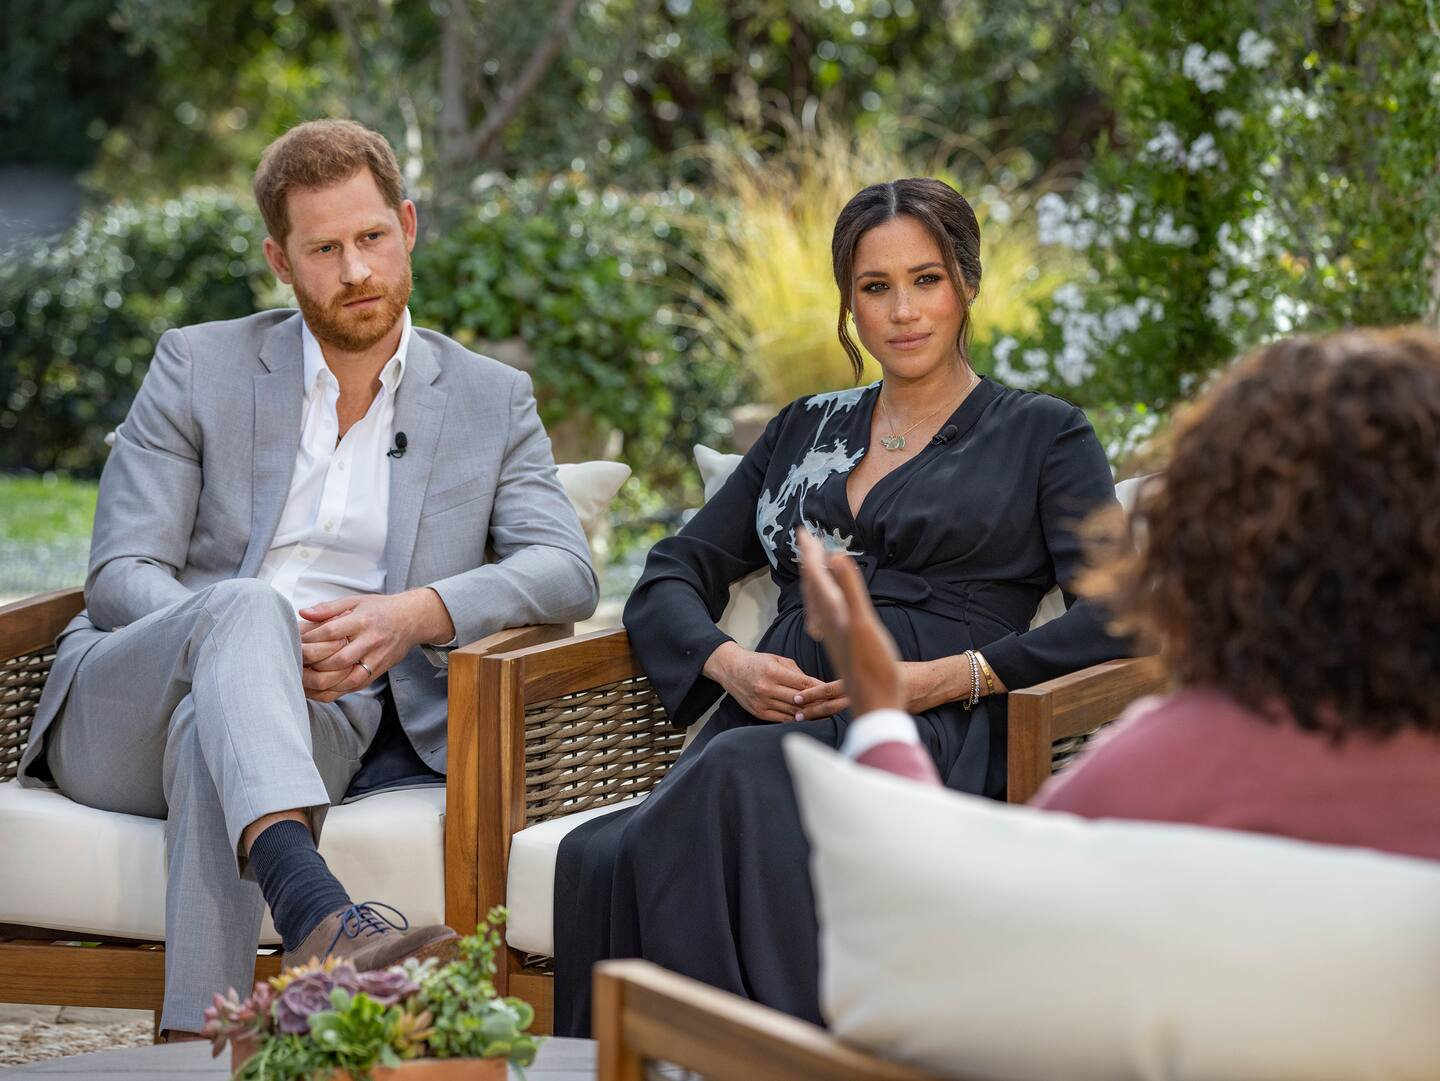 Meghan, Harry and Oprah: What to know before Sunday's highly-anticipated primetime interview